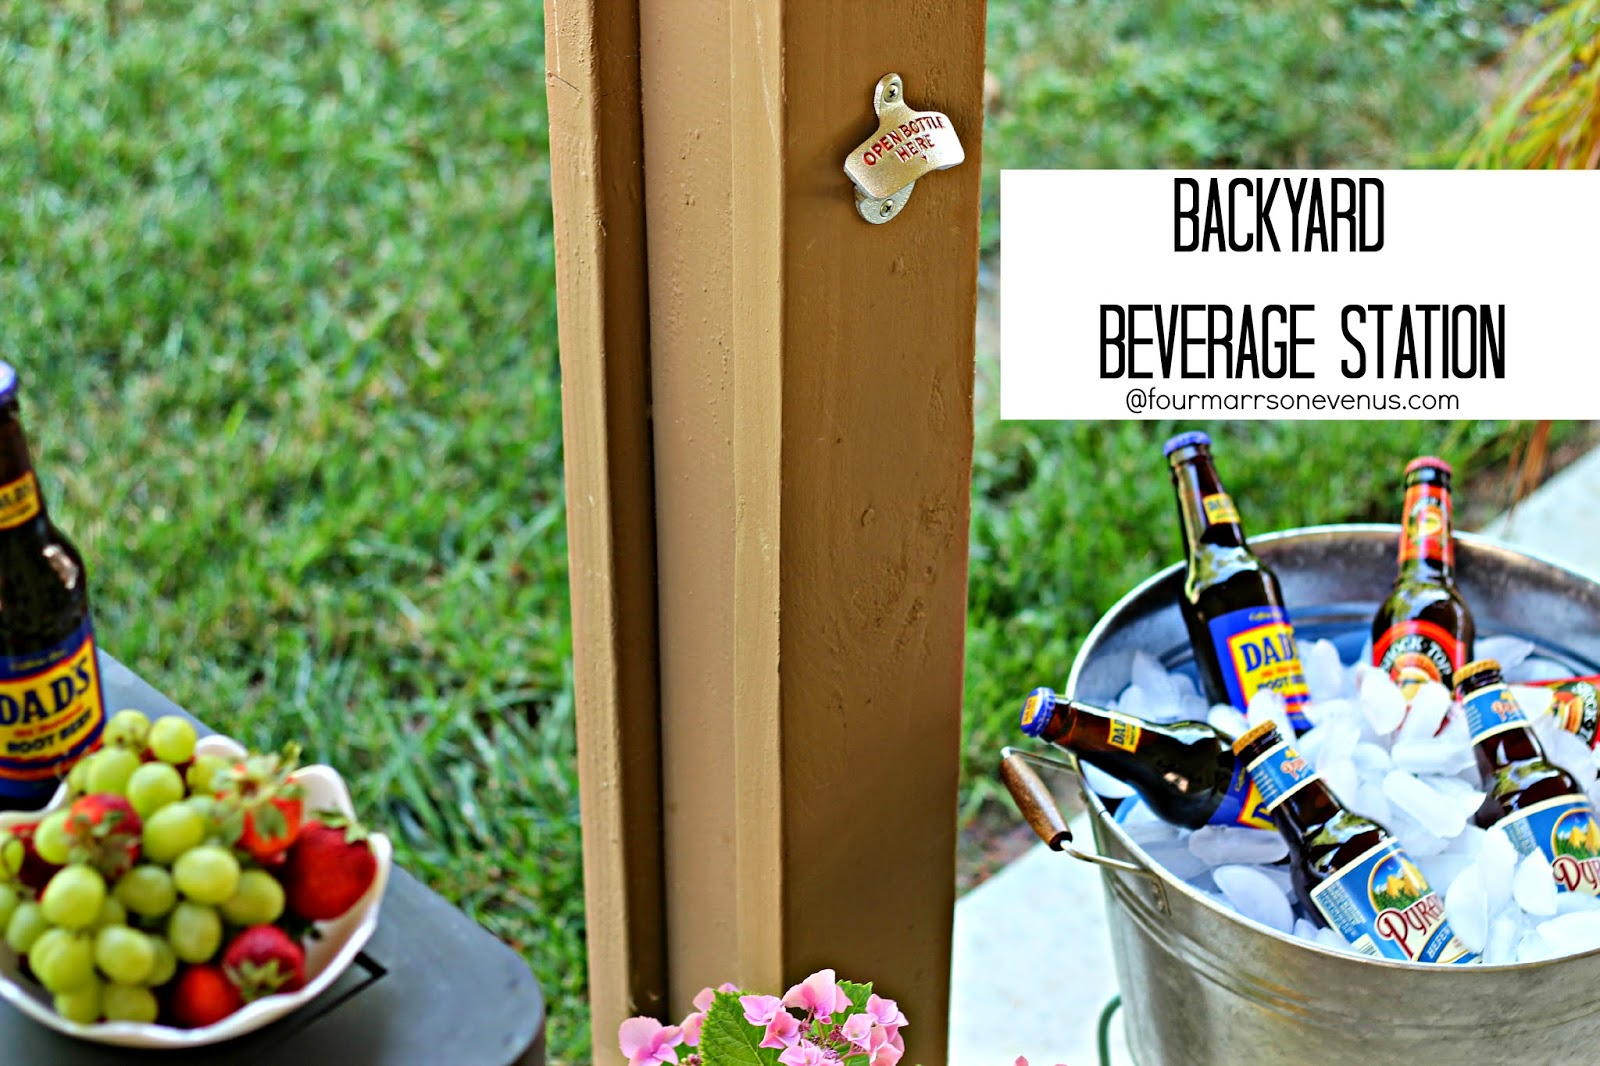 Backyard Beverage Station